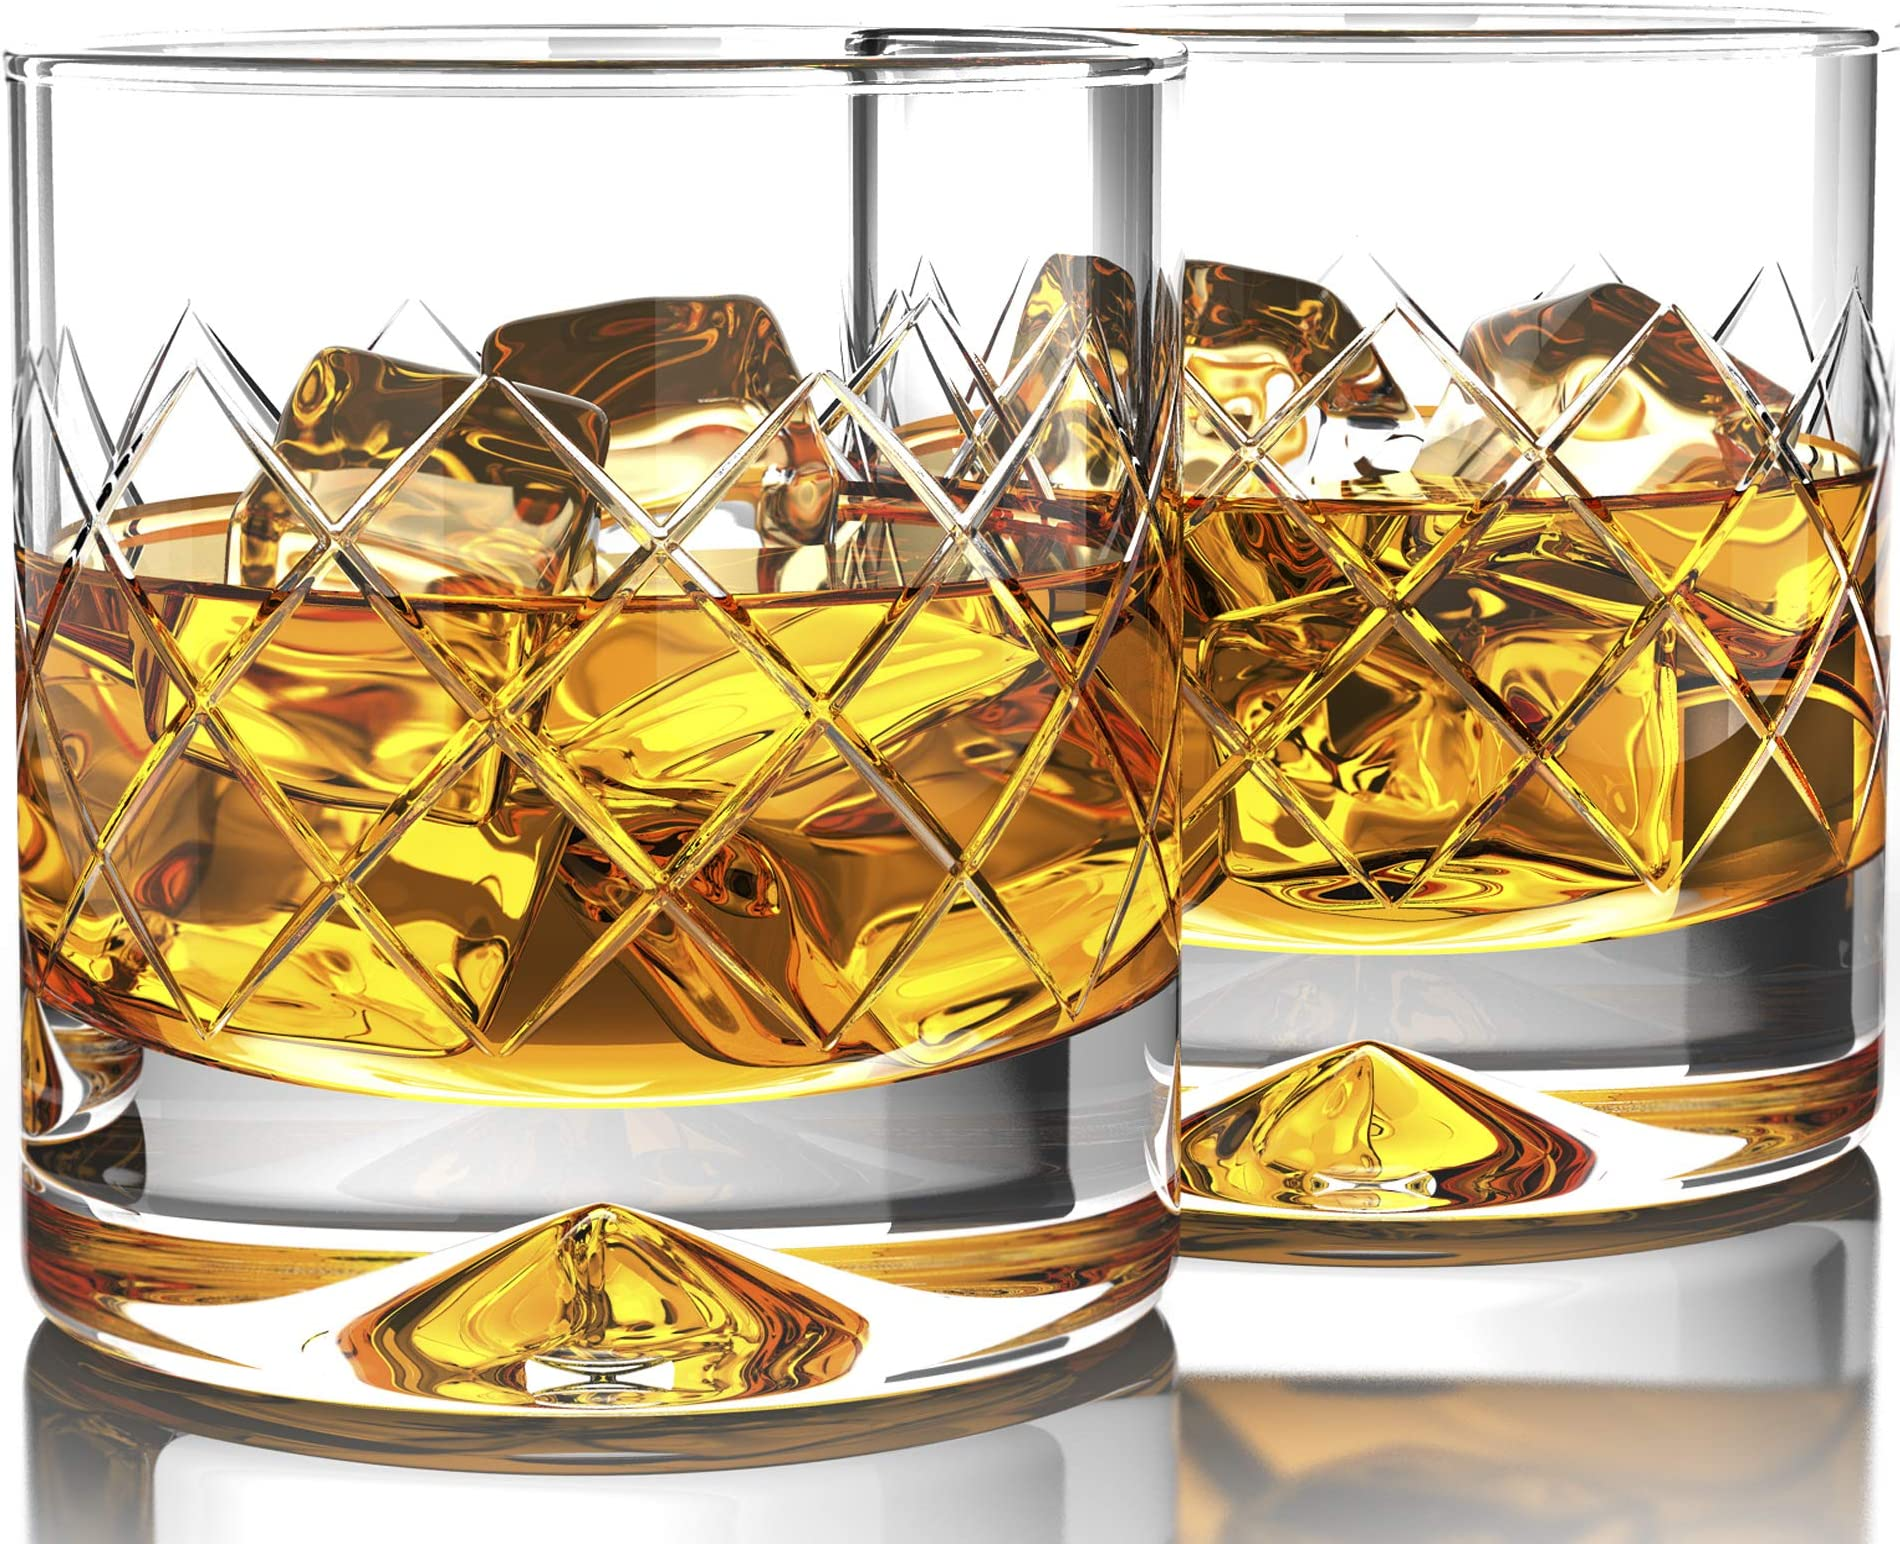 MOFADO Crystal Whiskey Glasses - DiamondEtch - 12oz (Set of 2) - Hand Blown Crystal - Thick Weighted Bottom Rocks Glasses - Perfect for Scotch, Bourbon, Manhattans, Old Fashioned Cocktails